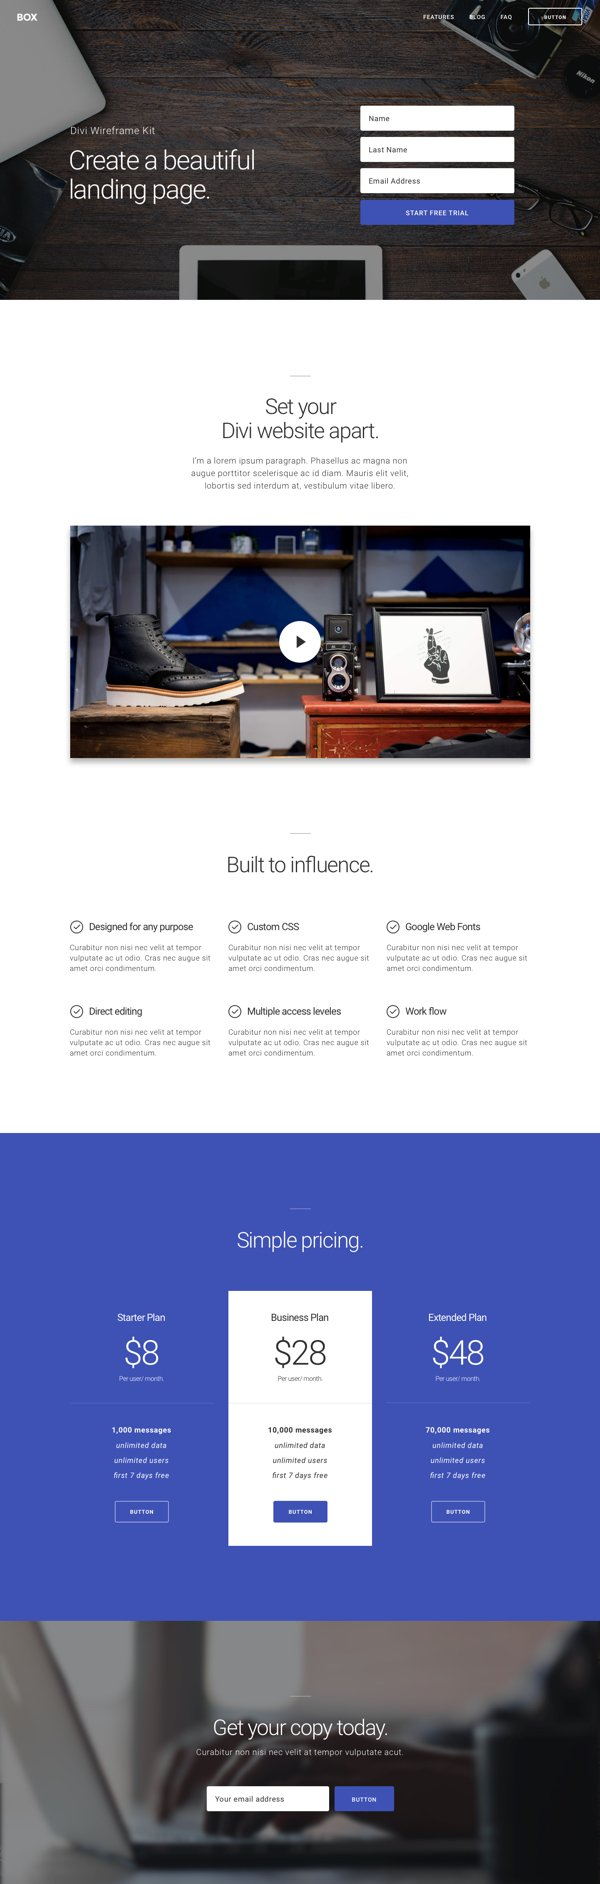 divi-100-landing-pages-layout-pack-built-w-expanding-wireframe-kit-02